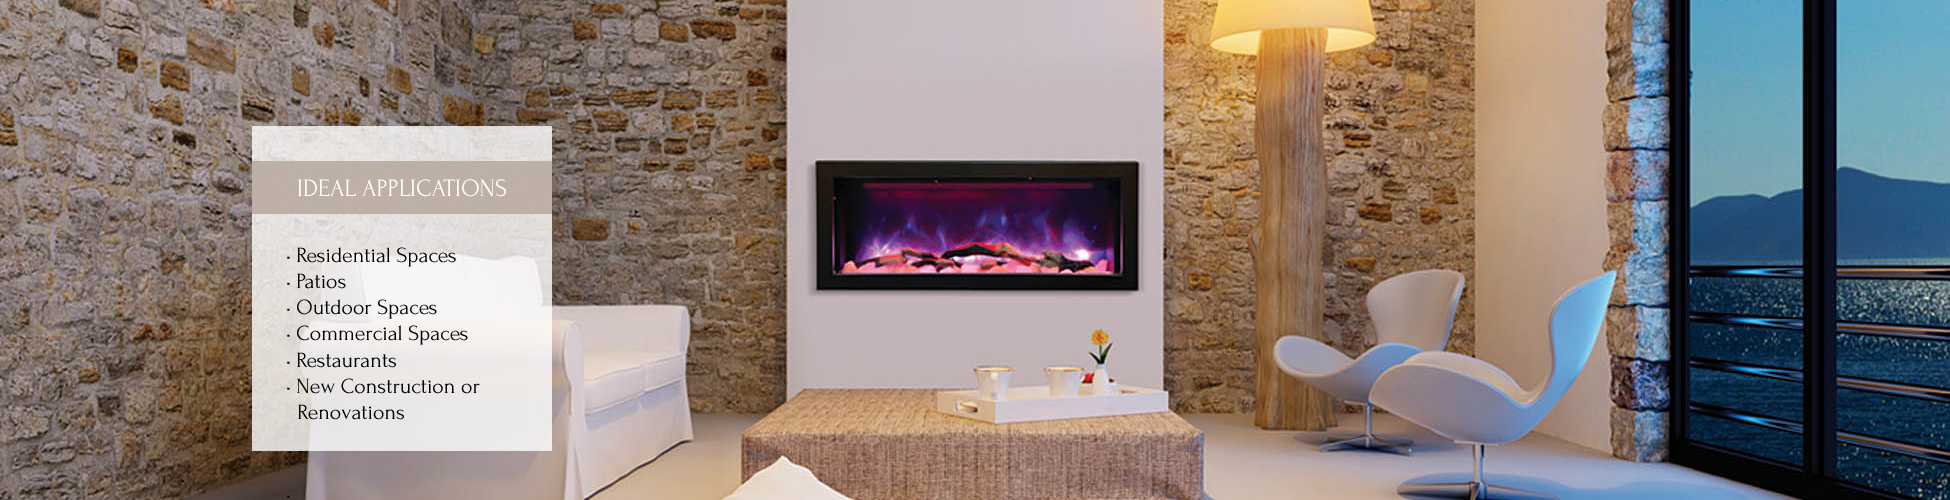 Panorama BI-40 electric fireplace